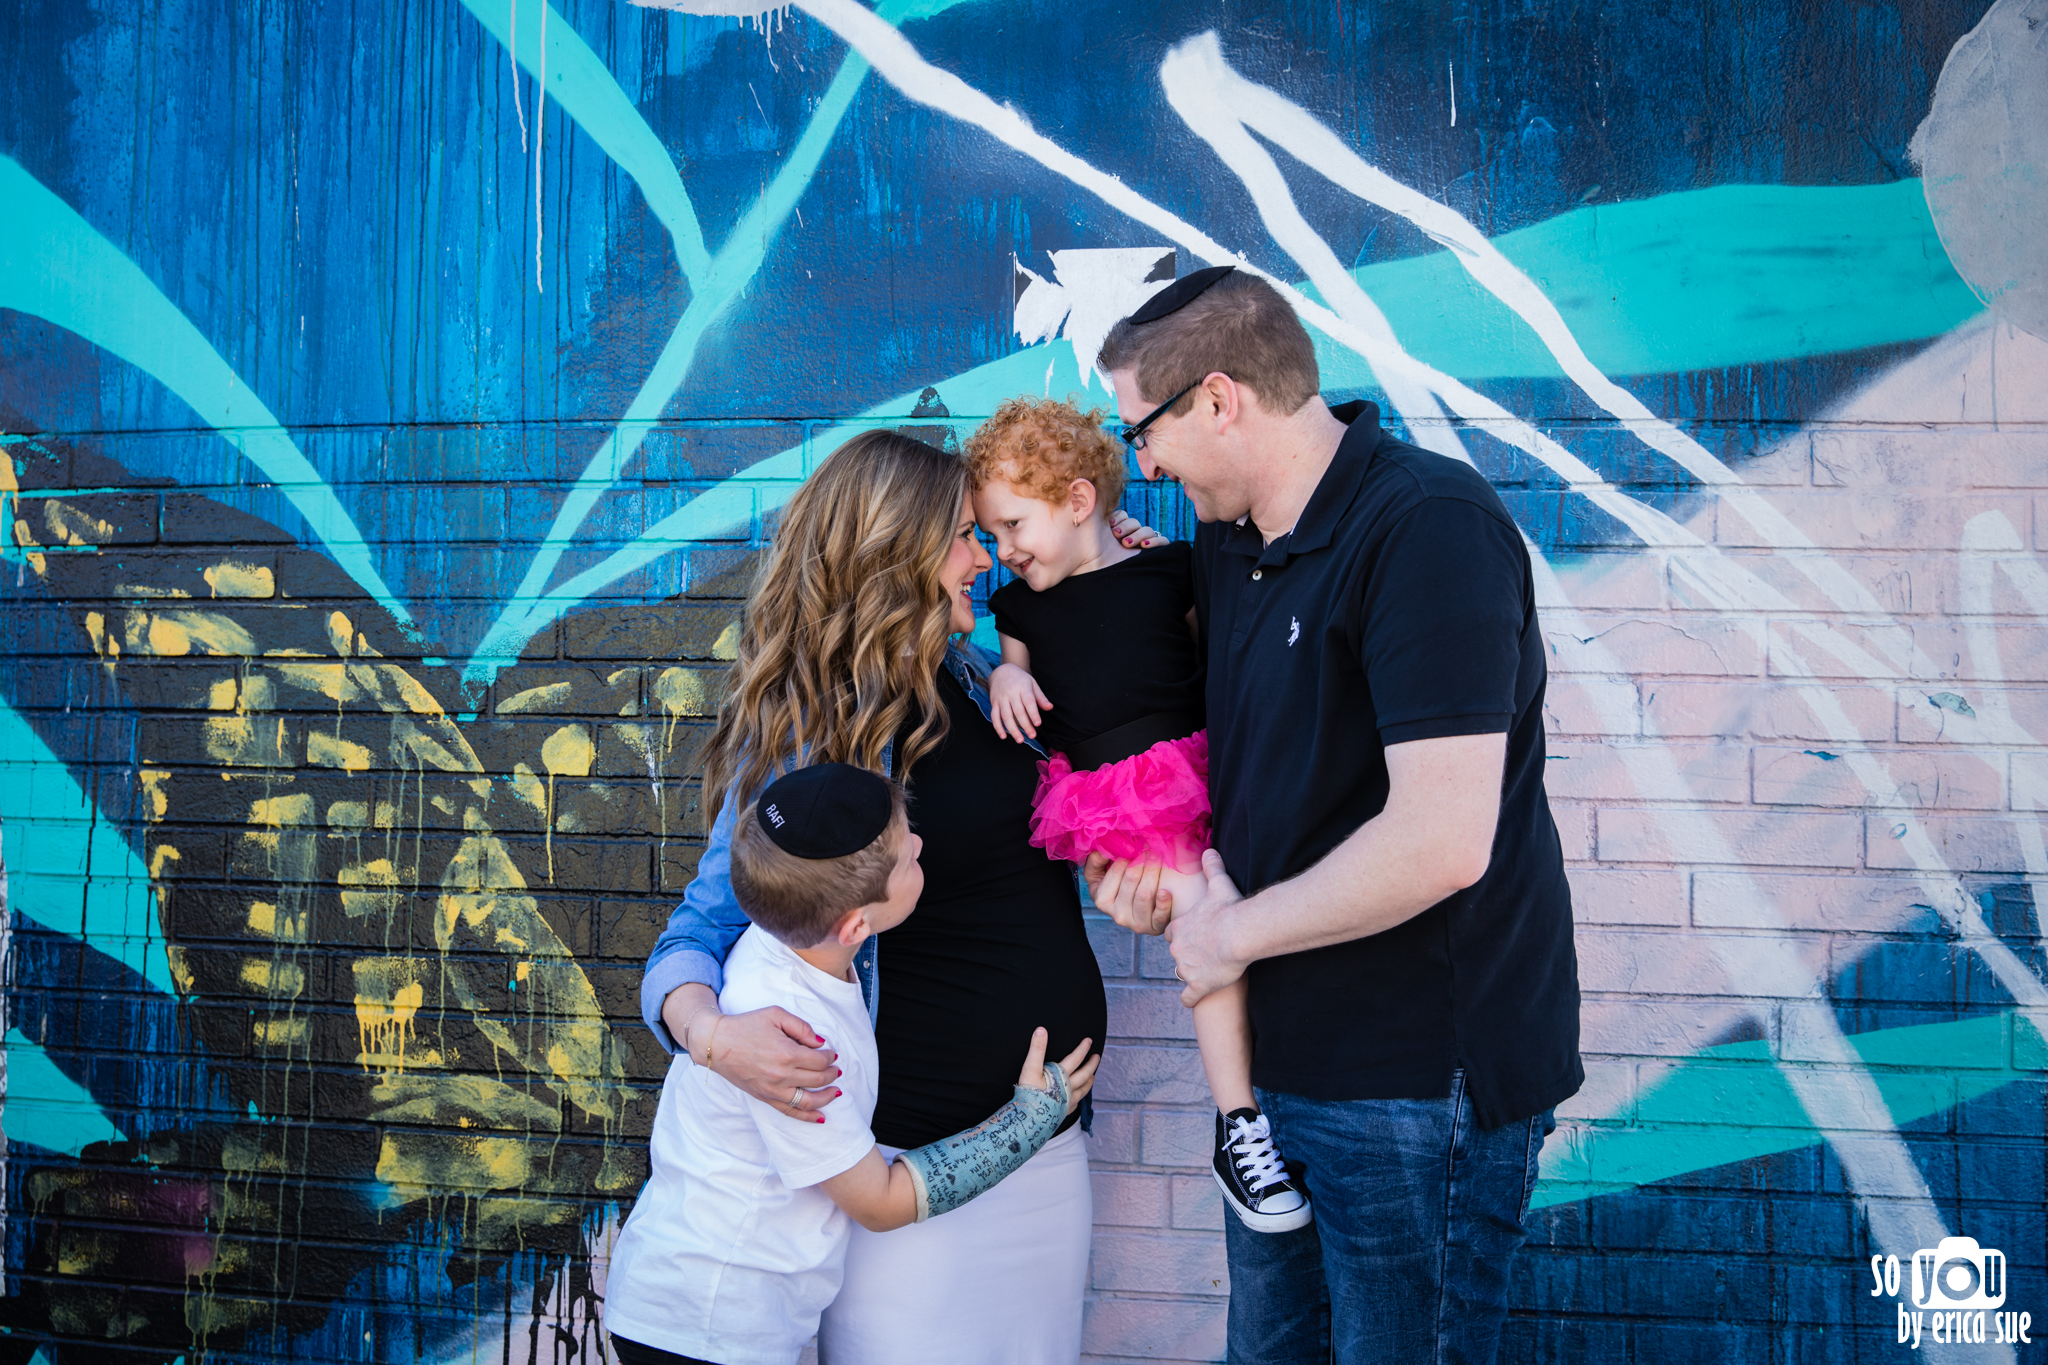 wynwood-family-photography-so-you-by-erica-sue-ft-lauderdale-davie-miami-fl-florida-2306.jpg